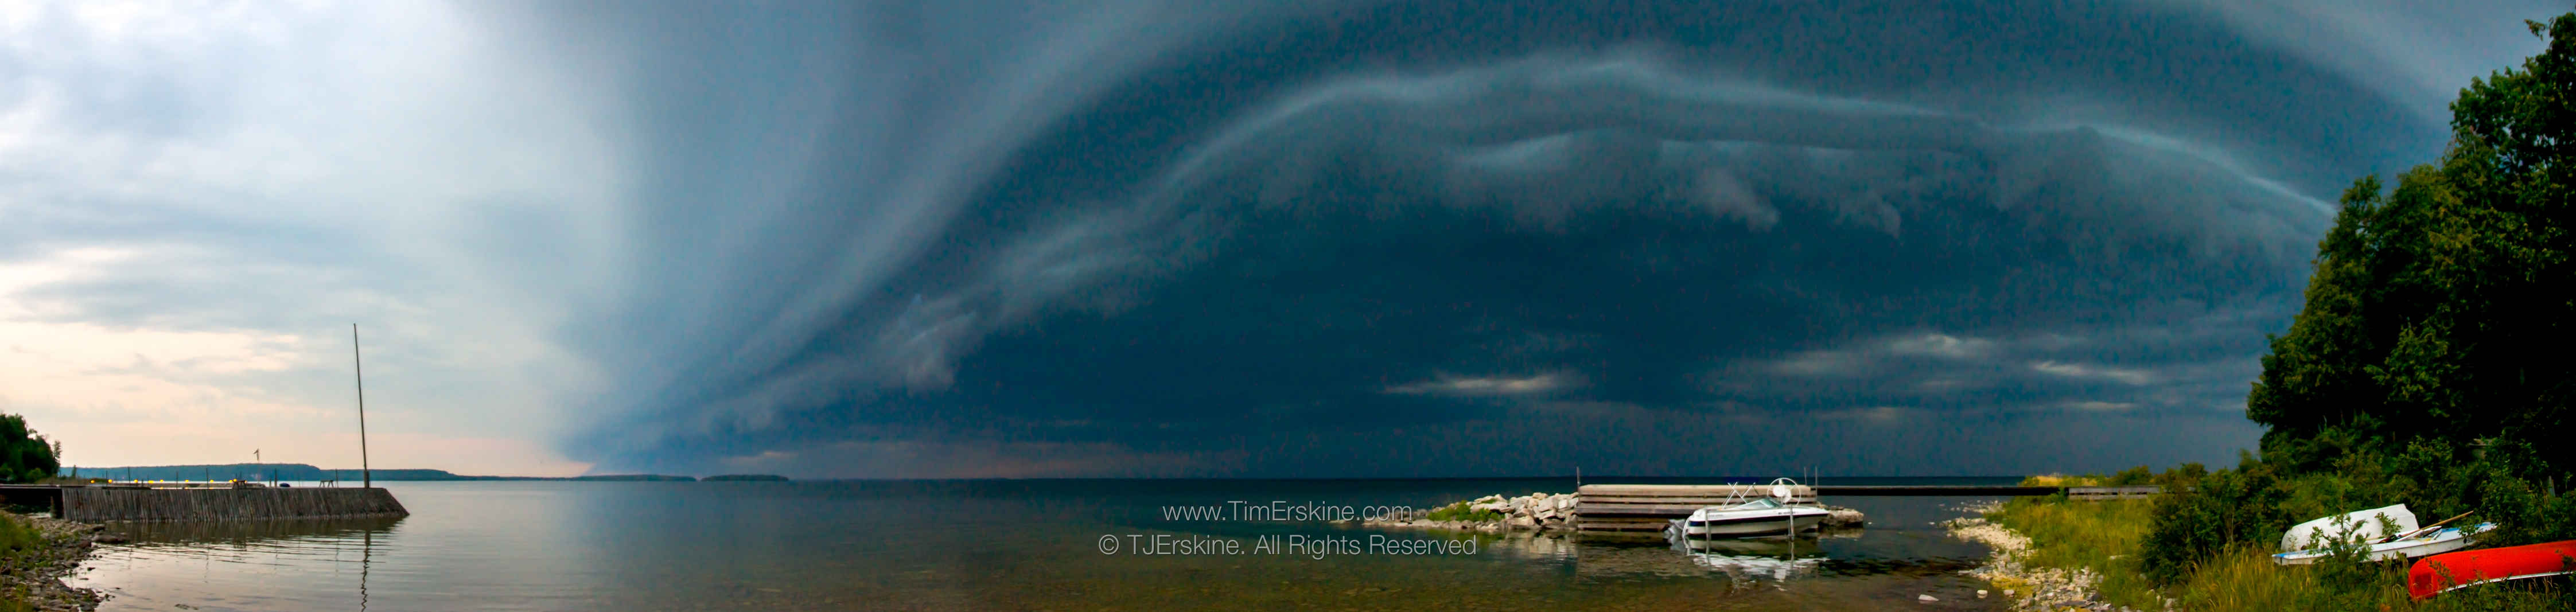 Ephraim Roll Cloud Storm Panorama